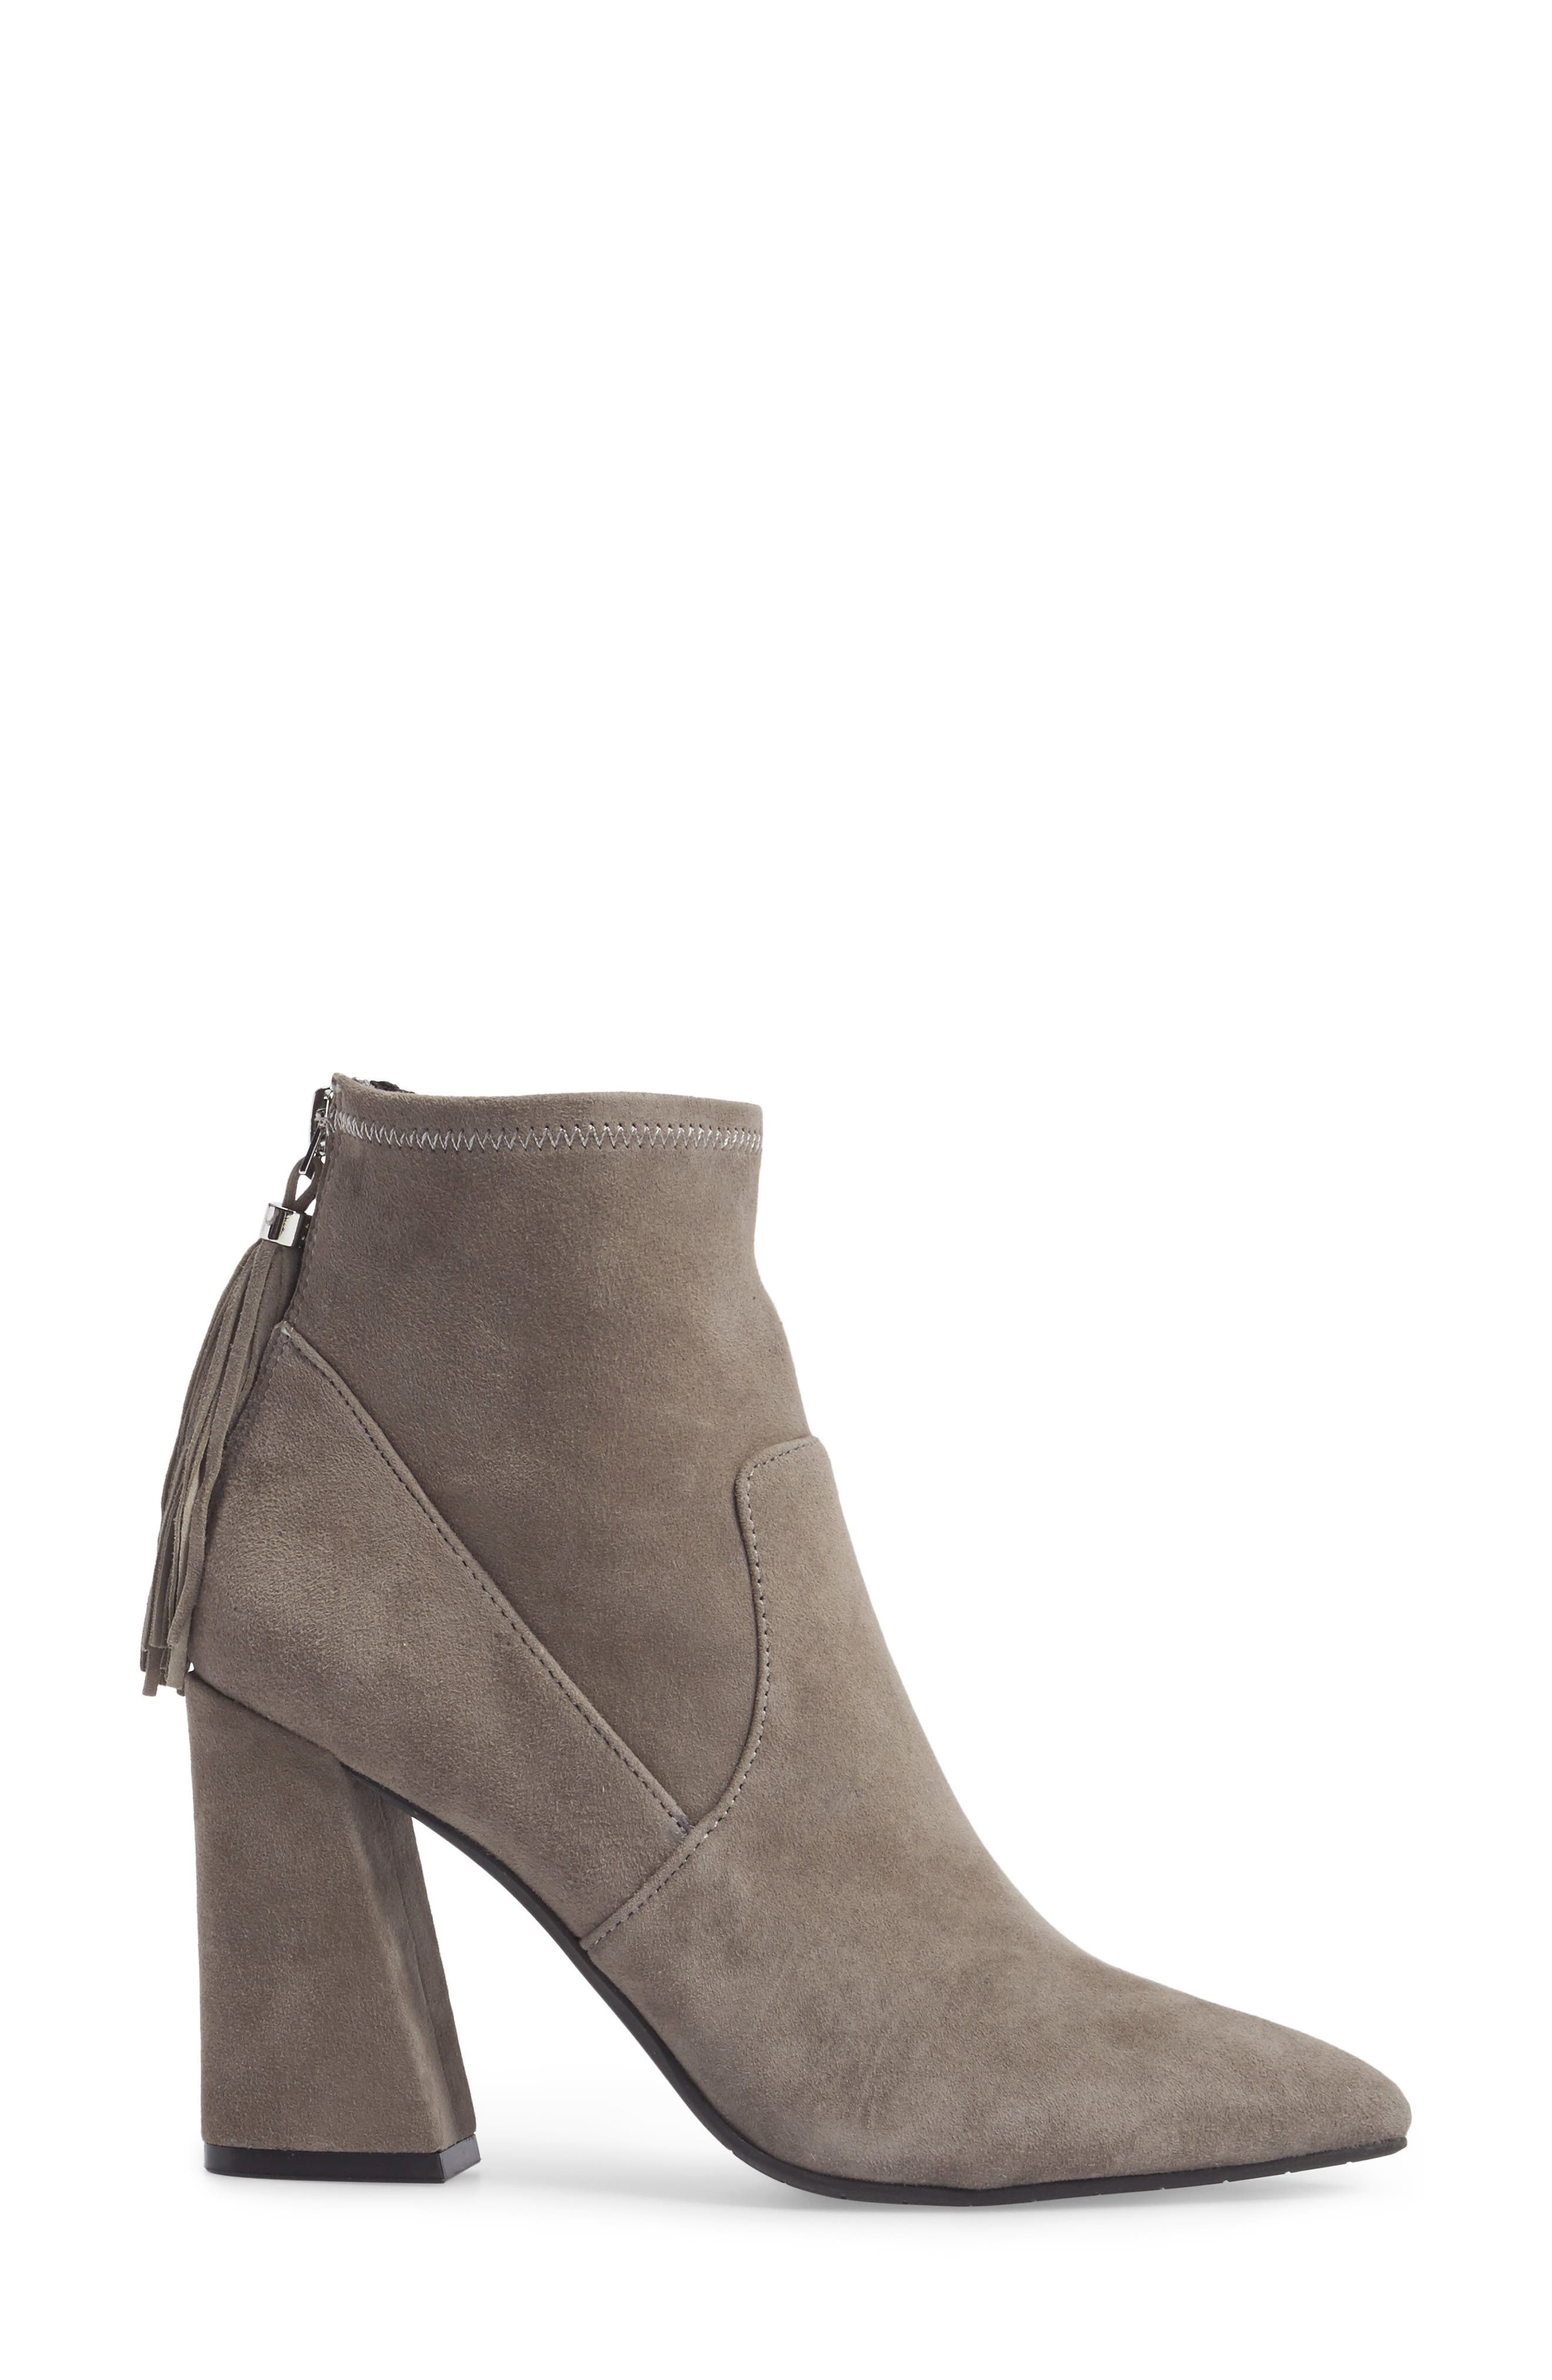 Gracelyn Pointy Toe Bootie,                             Alternate thumbnail 3, color,                             Elephant Suede